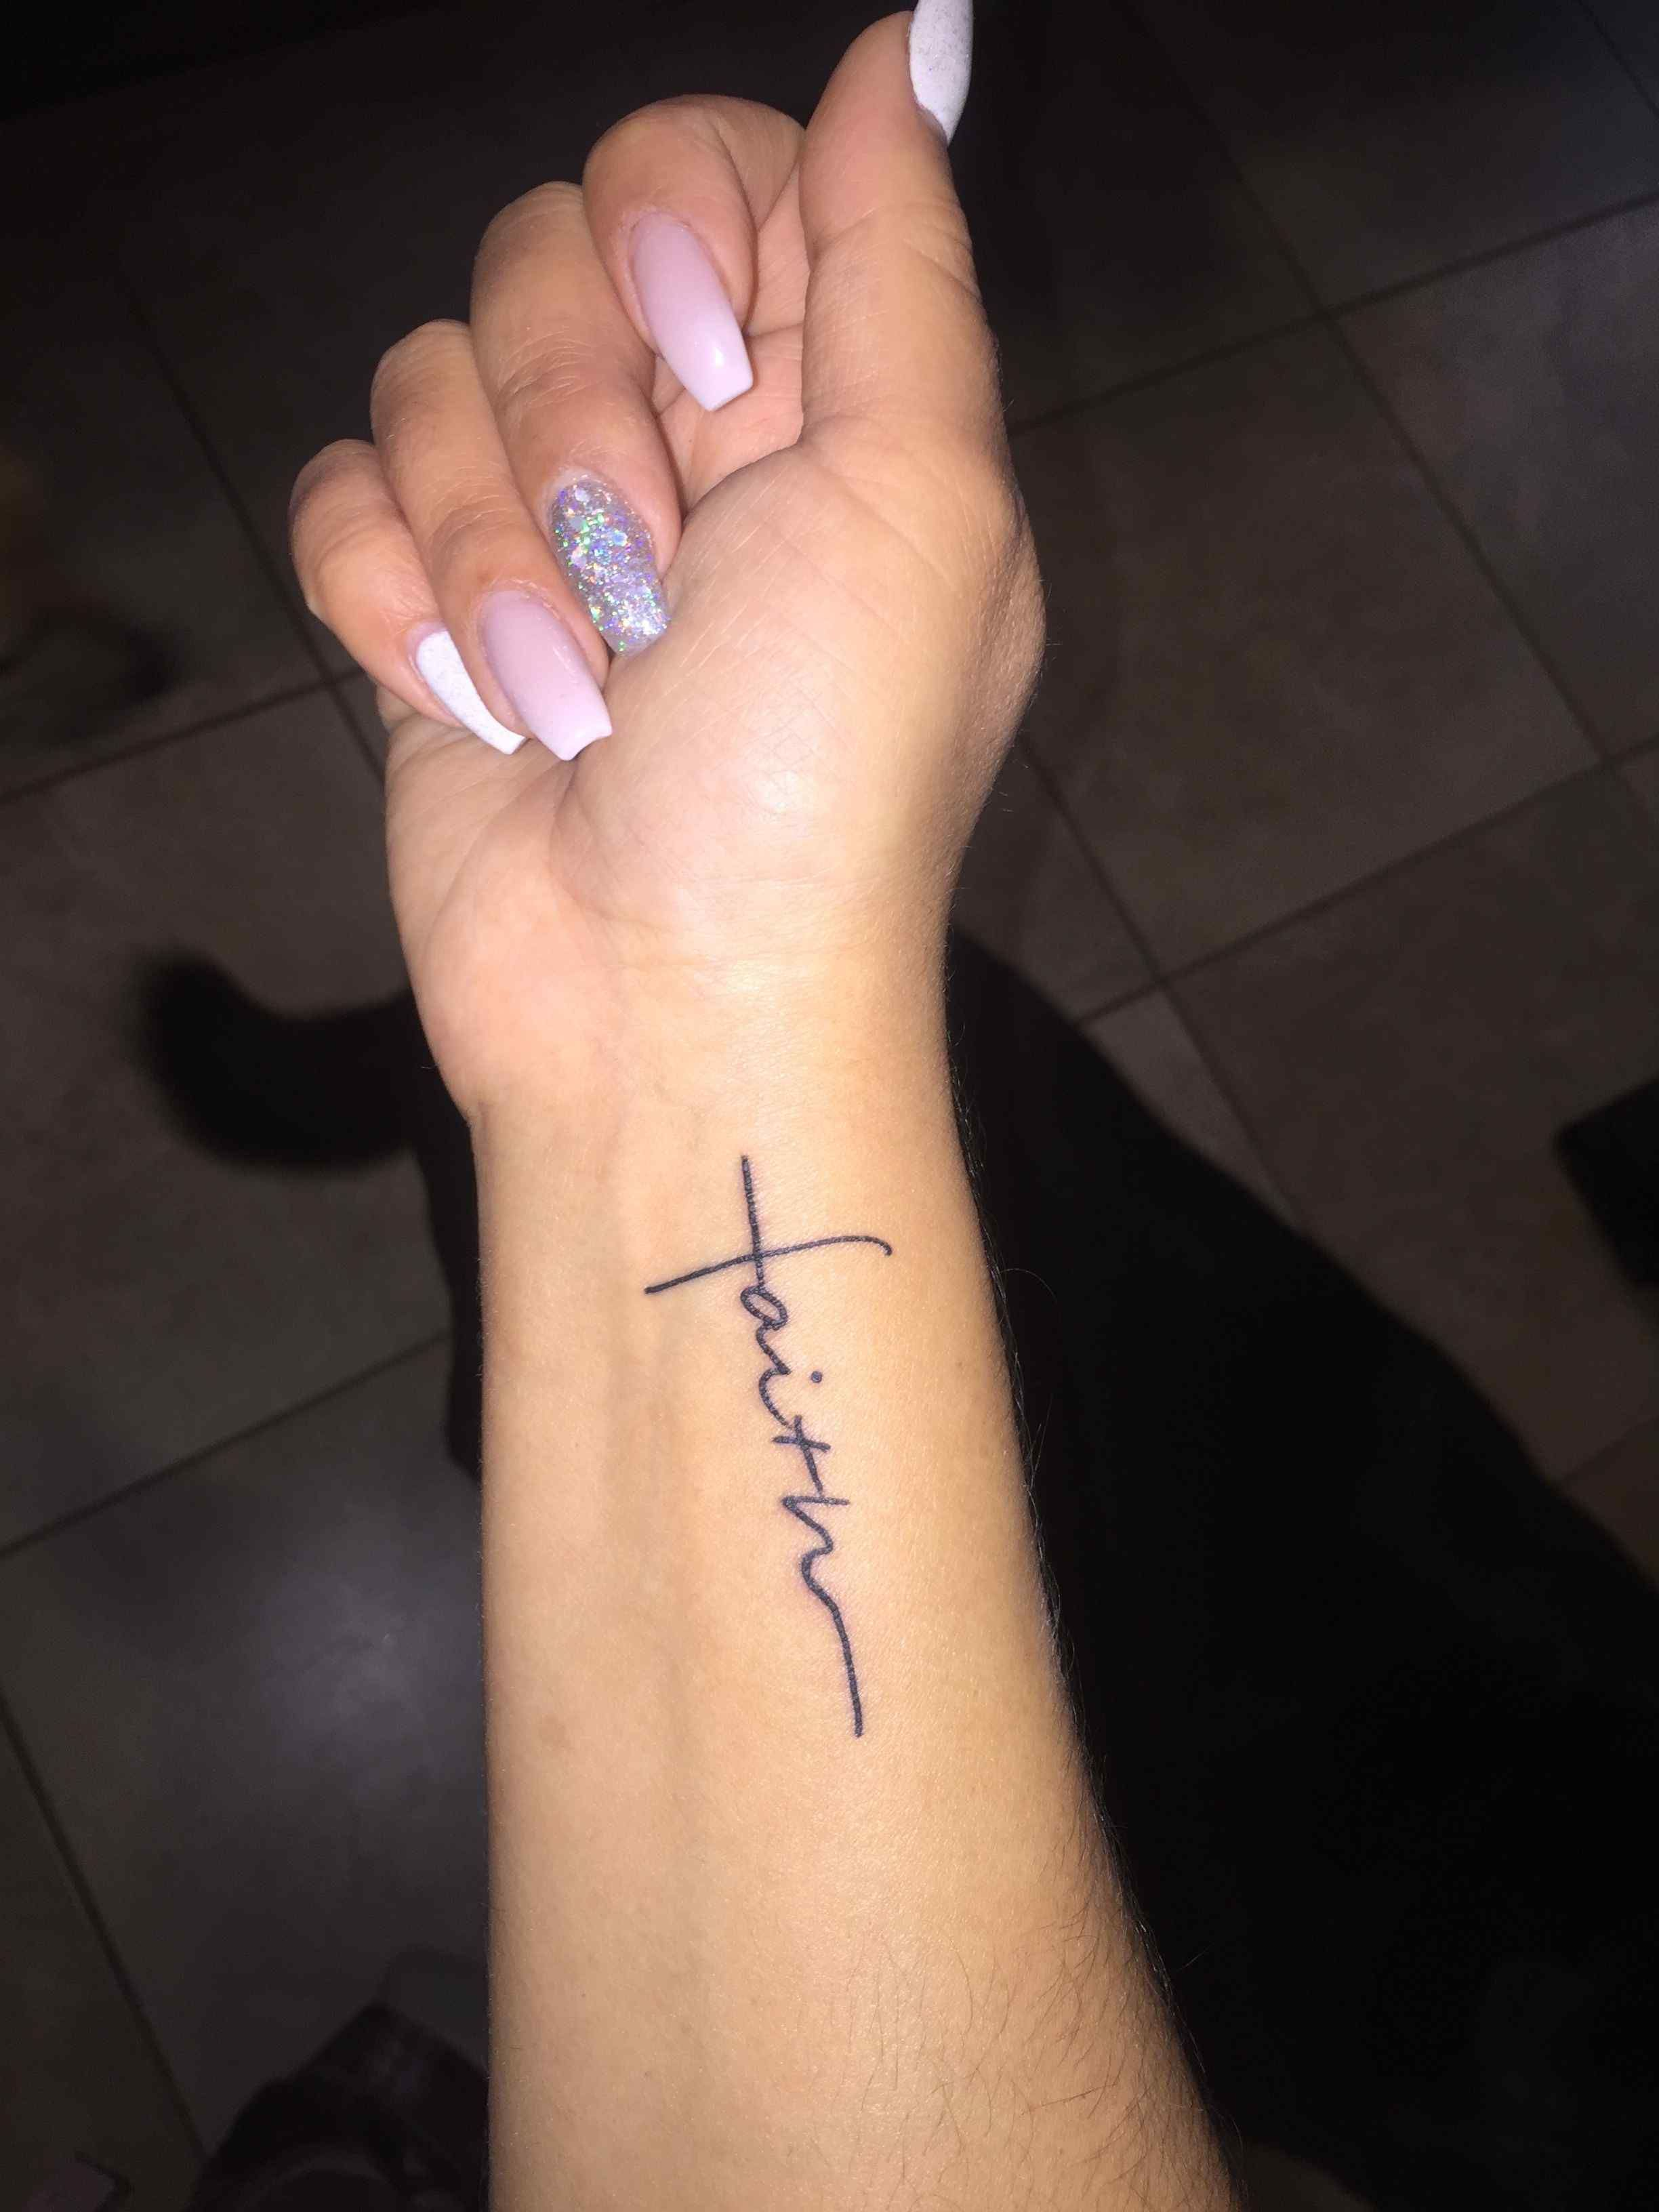 Most Popular Ways To New Tiny Script Tattoo Wrist Trends You Need To Know Aphrocattery Com Small Wrist Tattoos Wrist Tattoos For Women Tattoos For Women Small